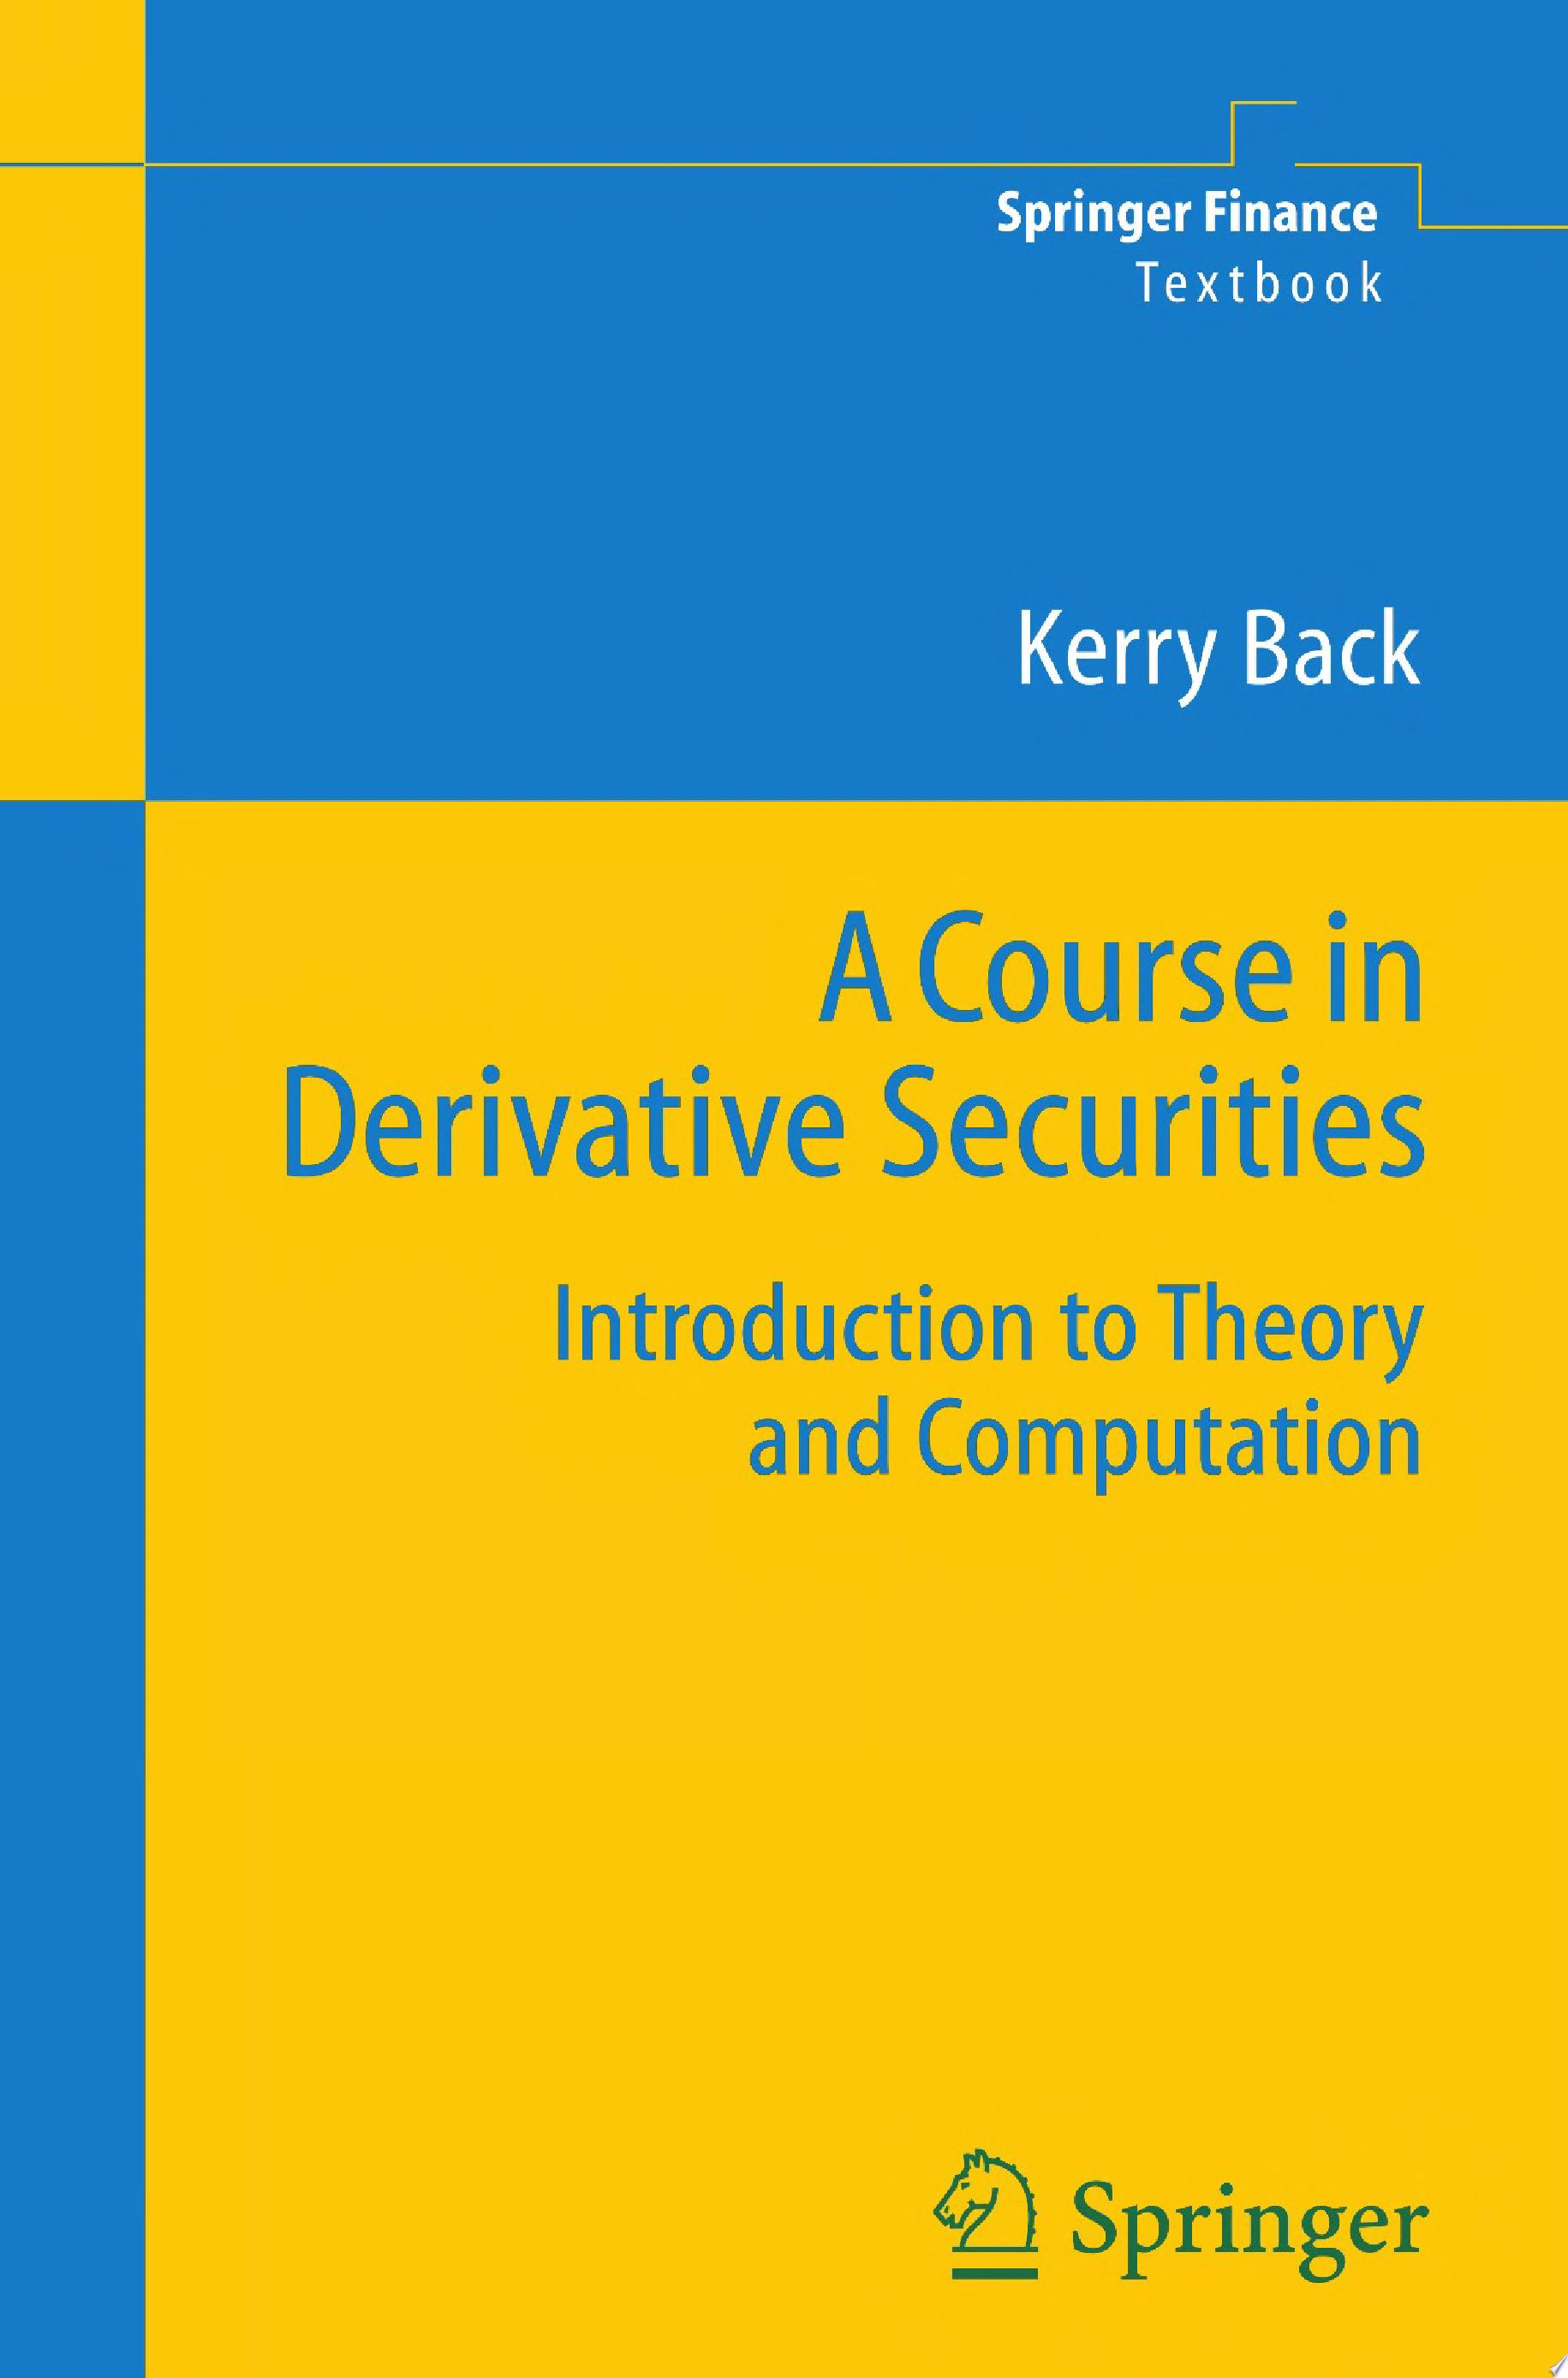 A Course in Derivative Securities